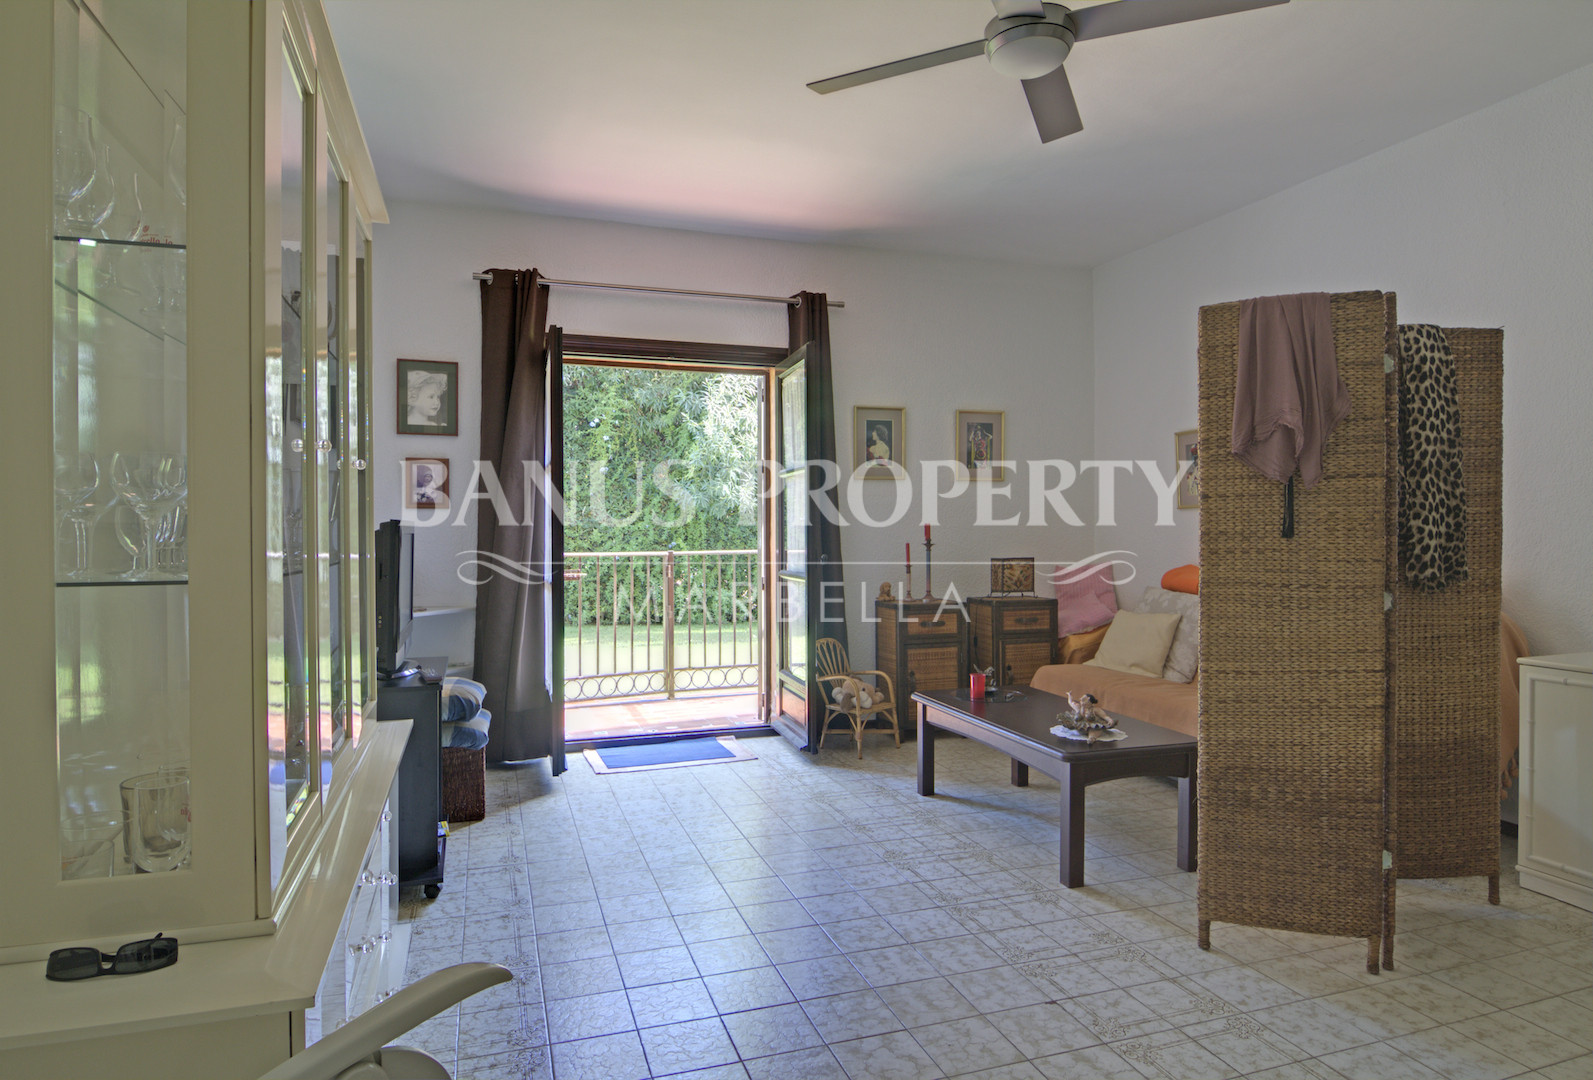 1 bedroom ground floor apartment for sale in Andalucia del Mar